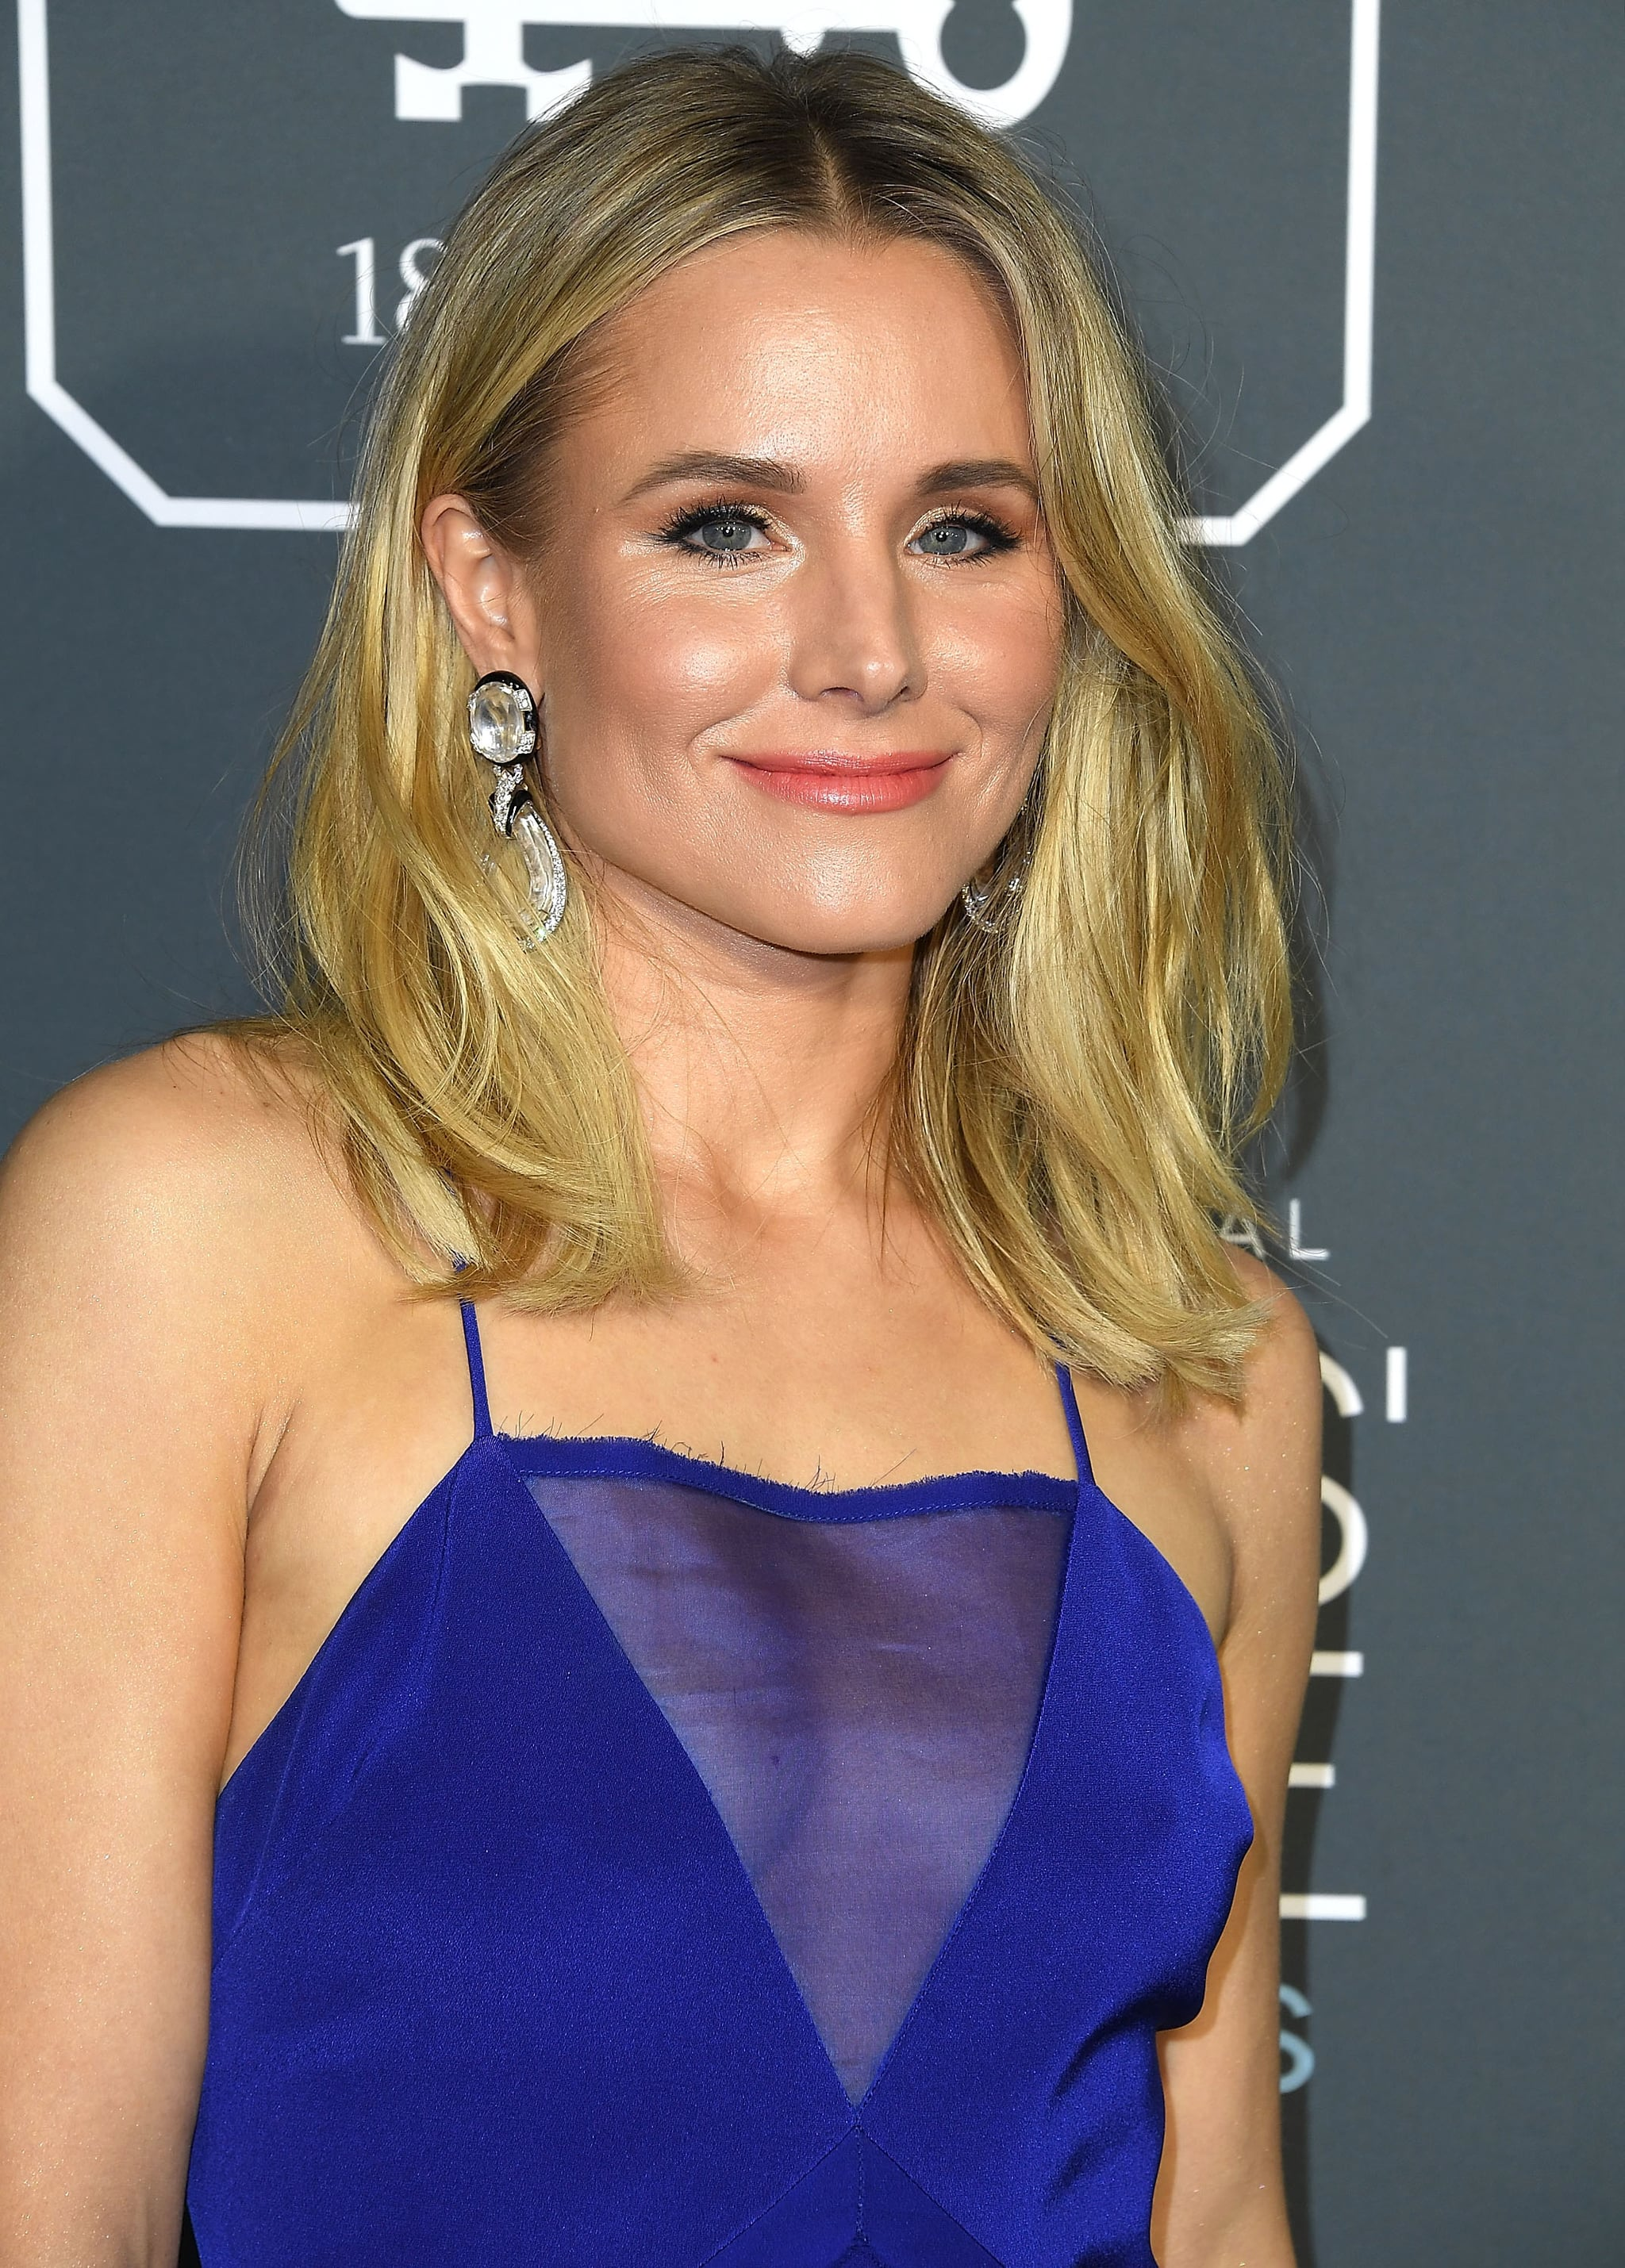 SANTA MONICA, CA - JANUARY 13:  Kristen Bell arrives at the The 24th Annual Critics' Choice Awards  attends The 24th Annual Critics' Choice Awards at Barker Hangar on January 13, 2019 in Santa Monica, California.  (Photo by Steve Granitz/WireImage)